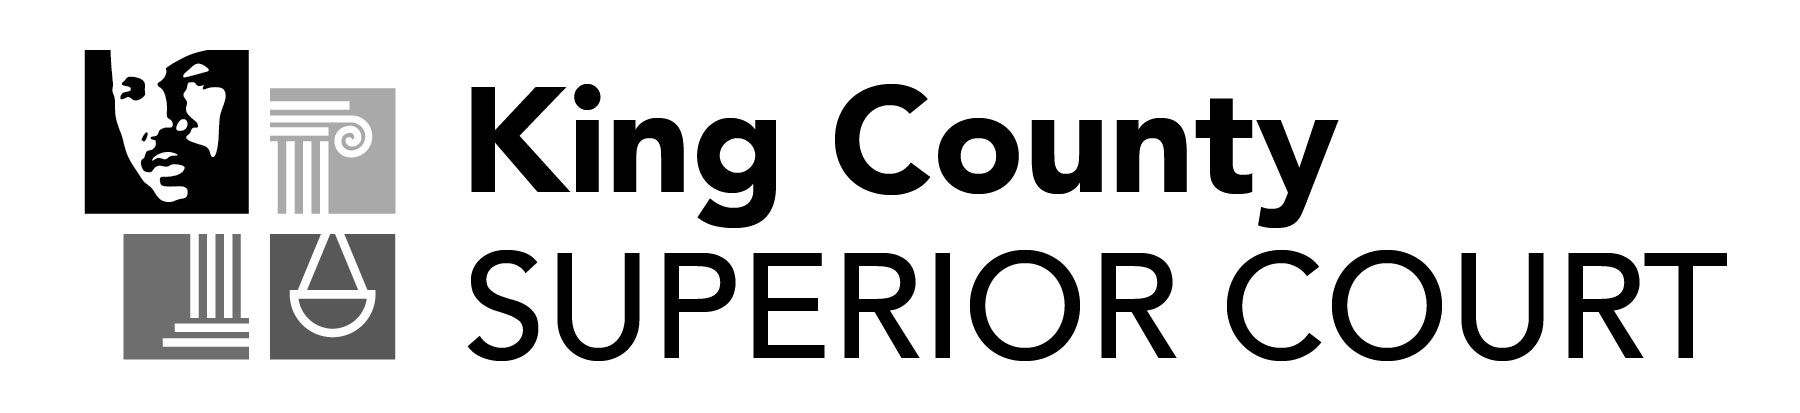 King County Superior Court